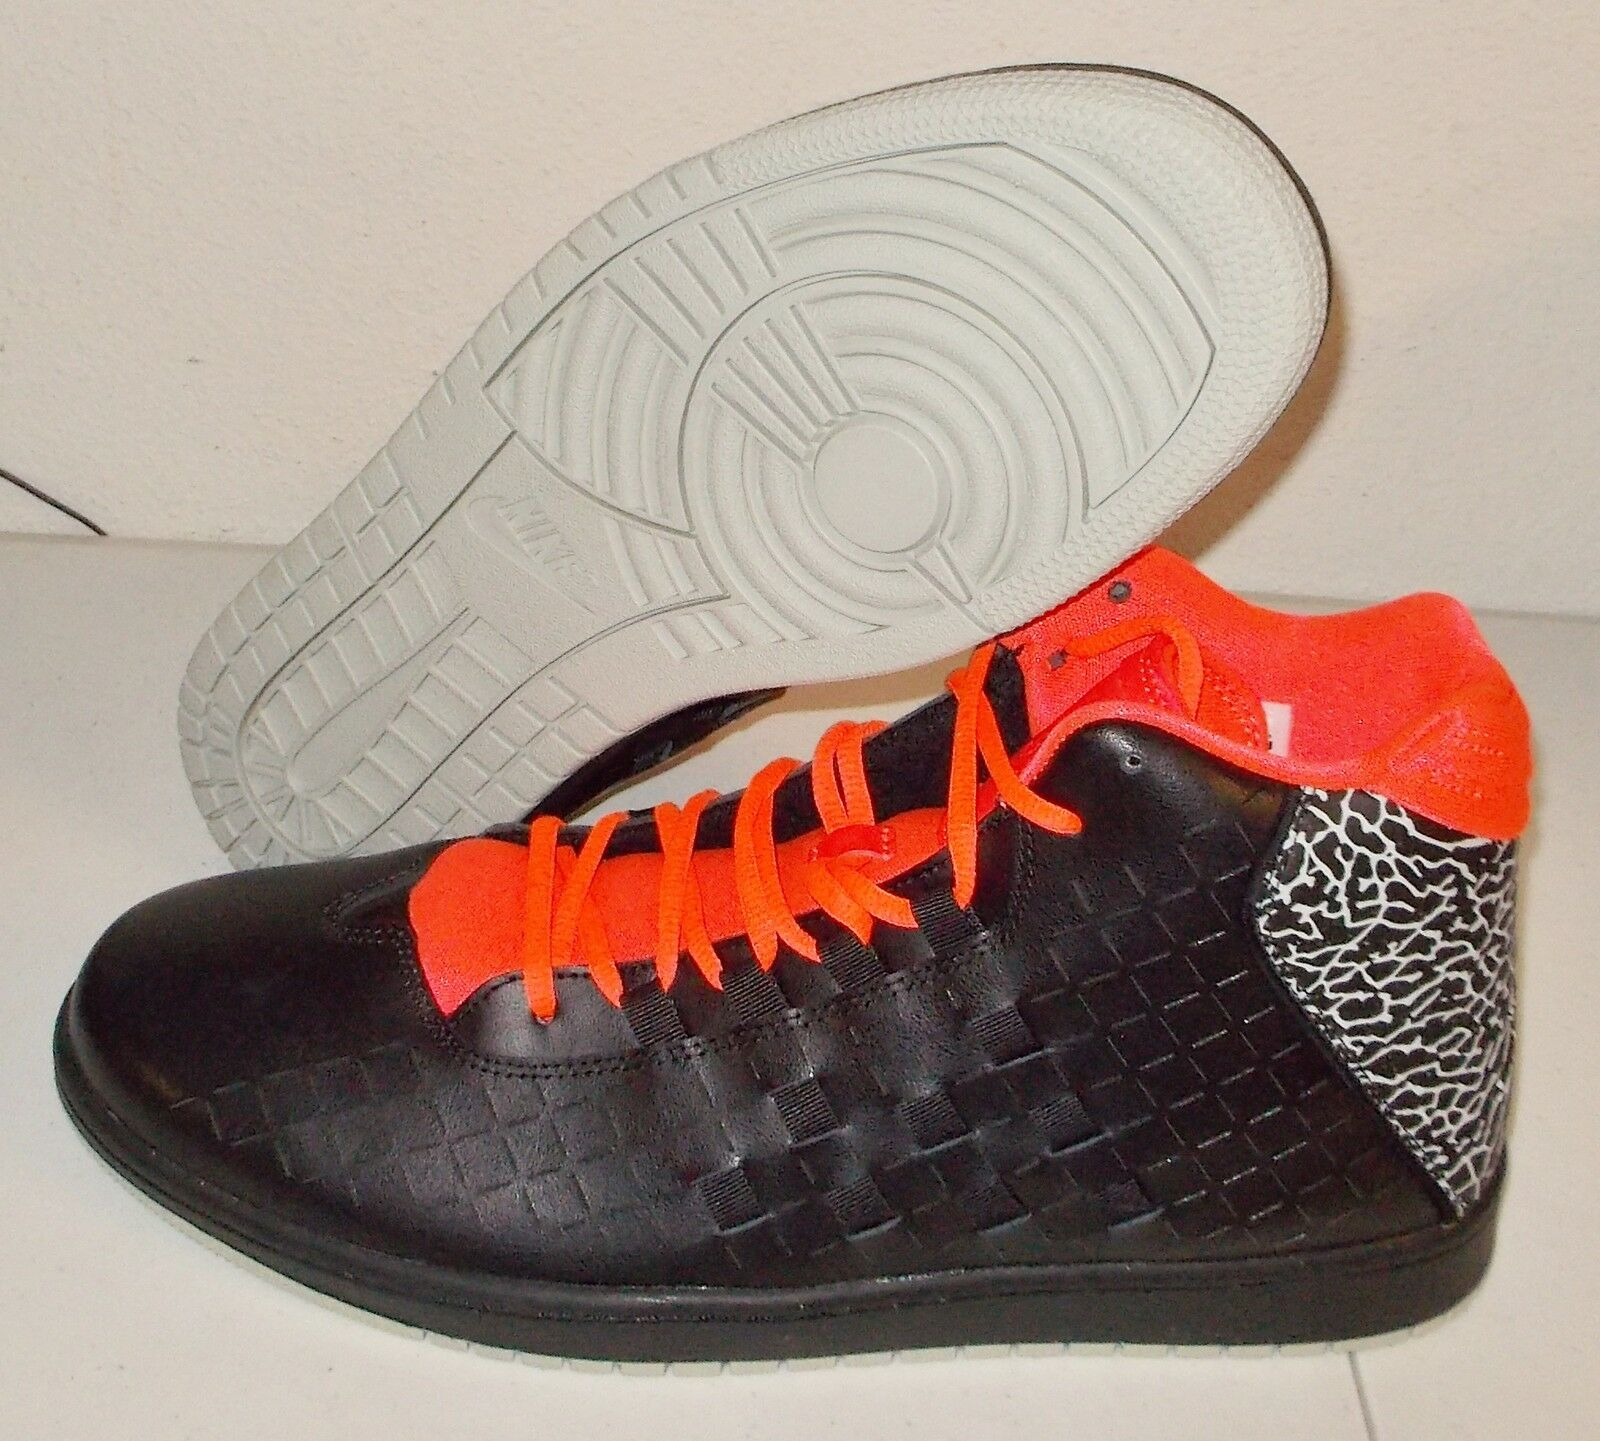 NEW NIKE JORDAN ILLUSION Black INFRARED MENS 13 Basketball Woven retro cement NR Casual wild